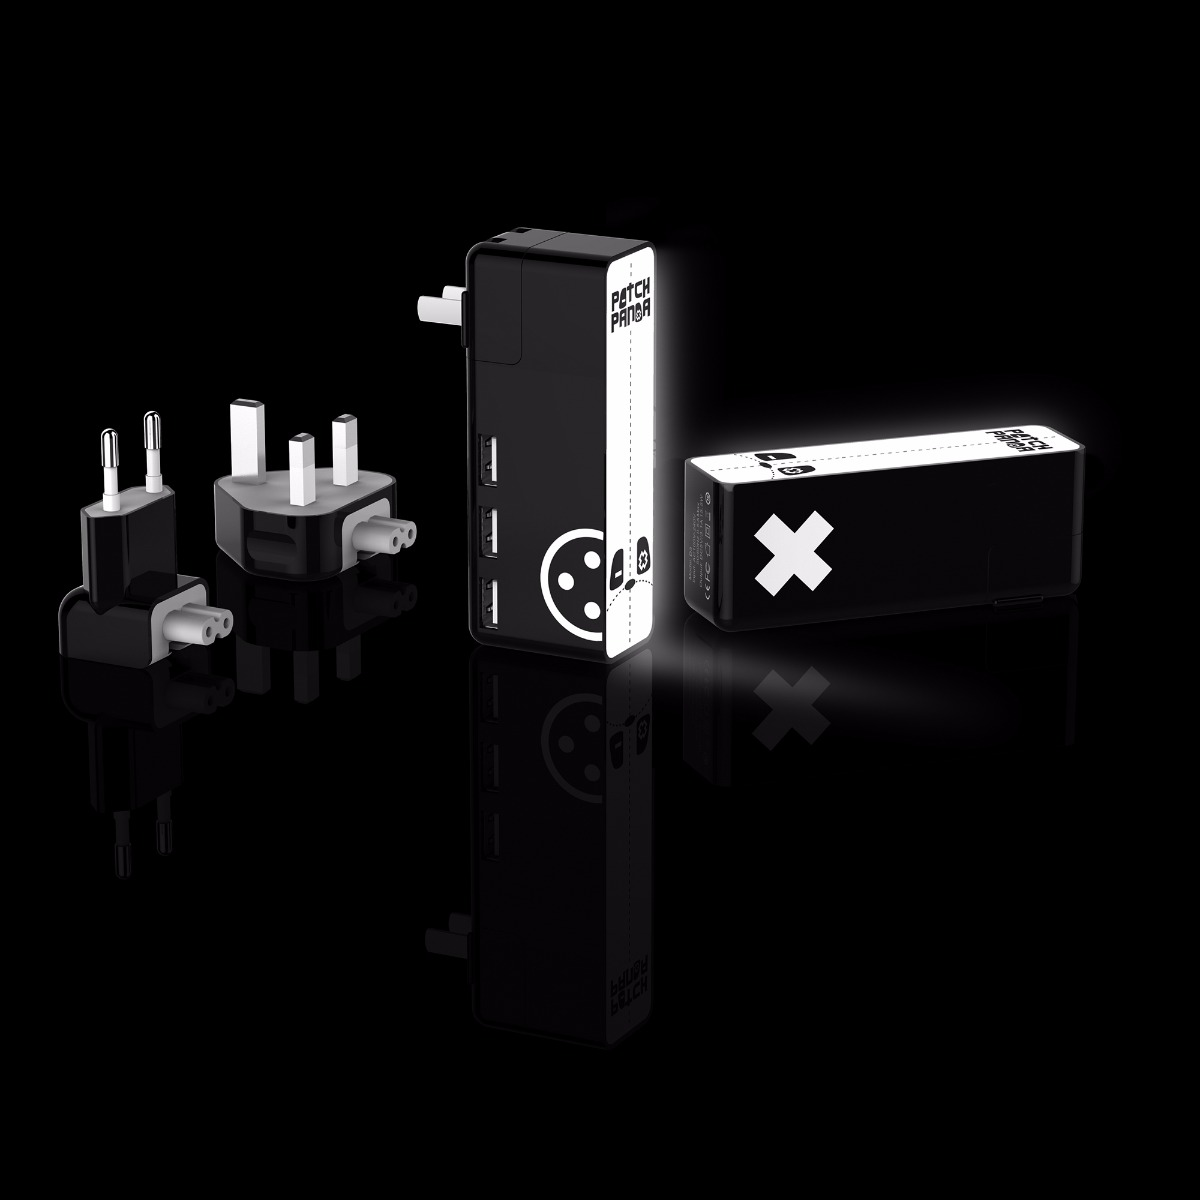 Patch Panda D3 USB Wall Adapter with Touch Night Light Function